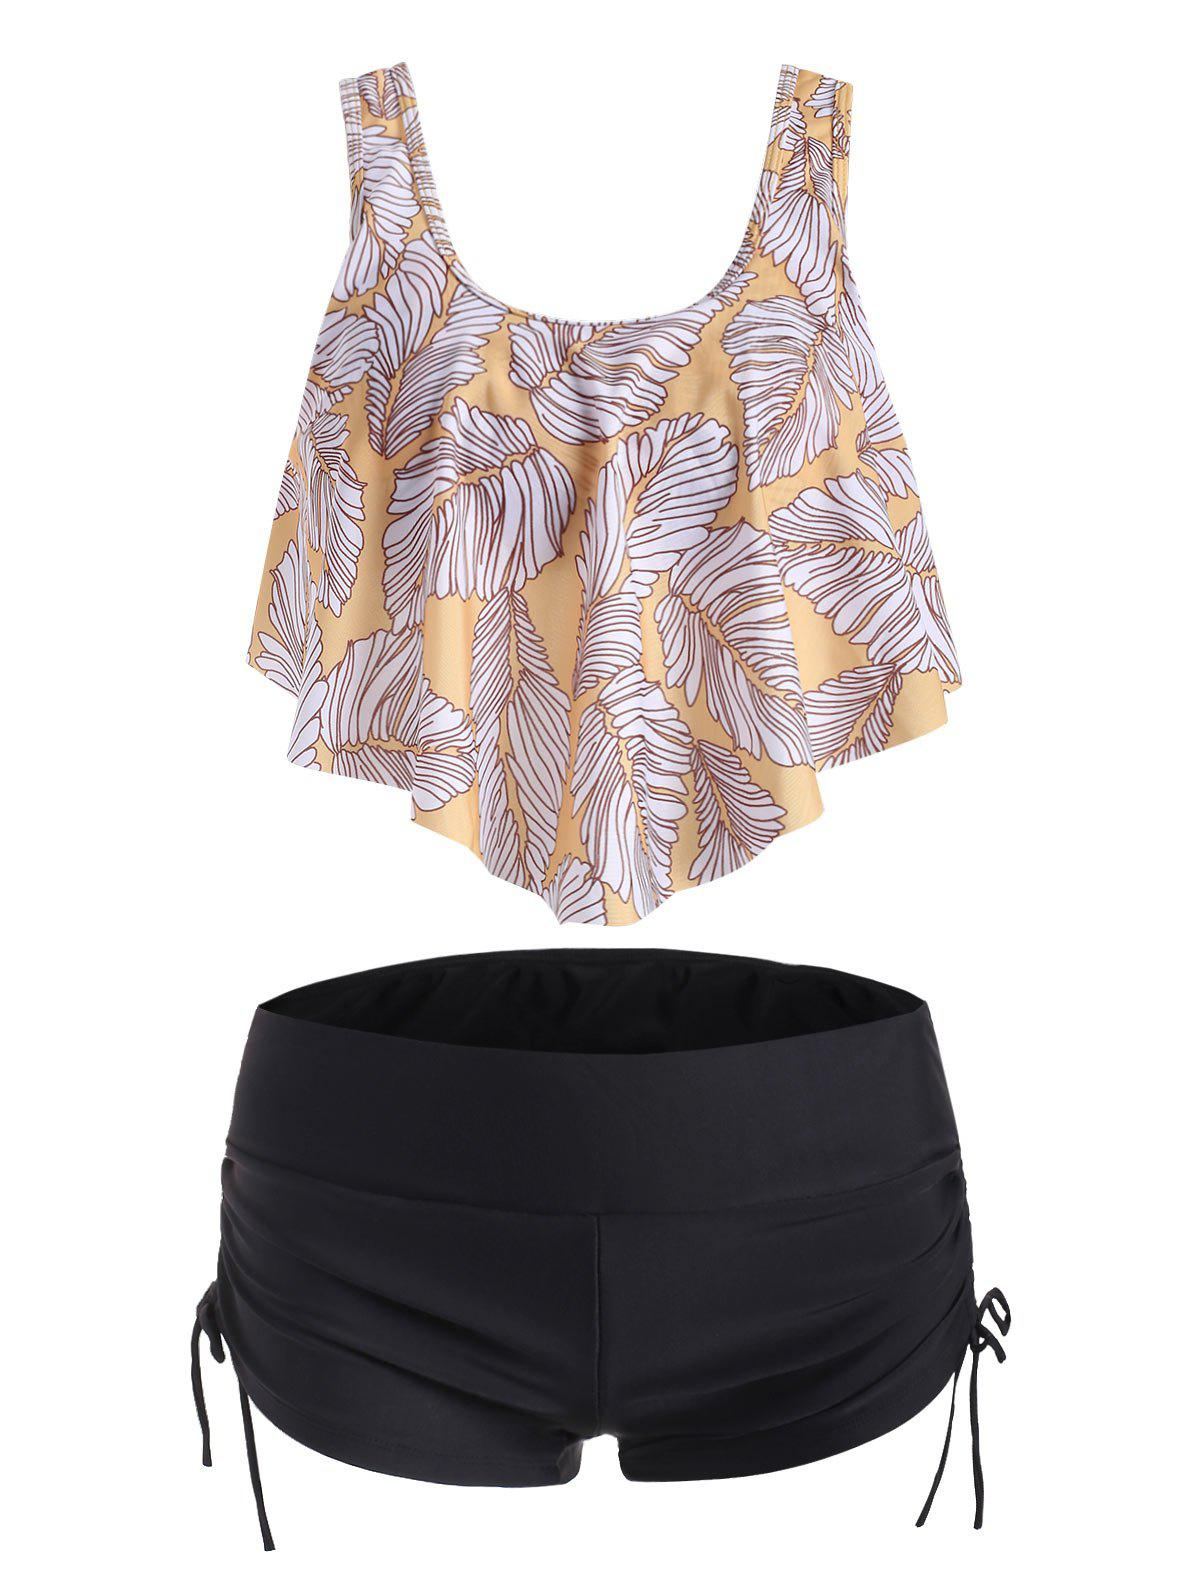 Overlay Flounces Cinched Leaves Print Tankini Swimsuit - GOLDENROD L